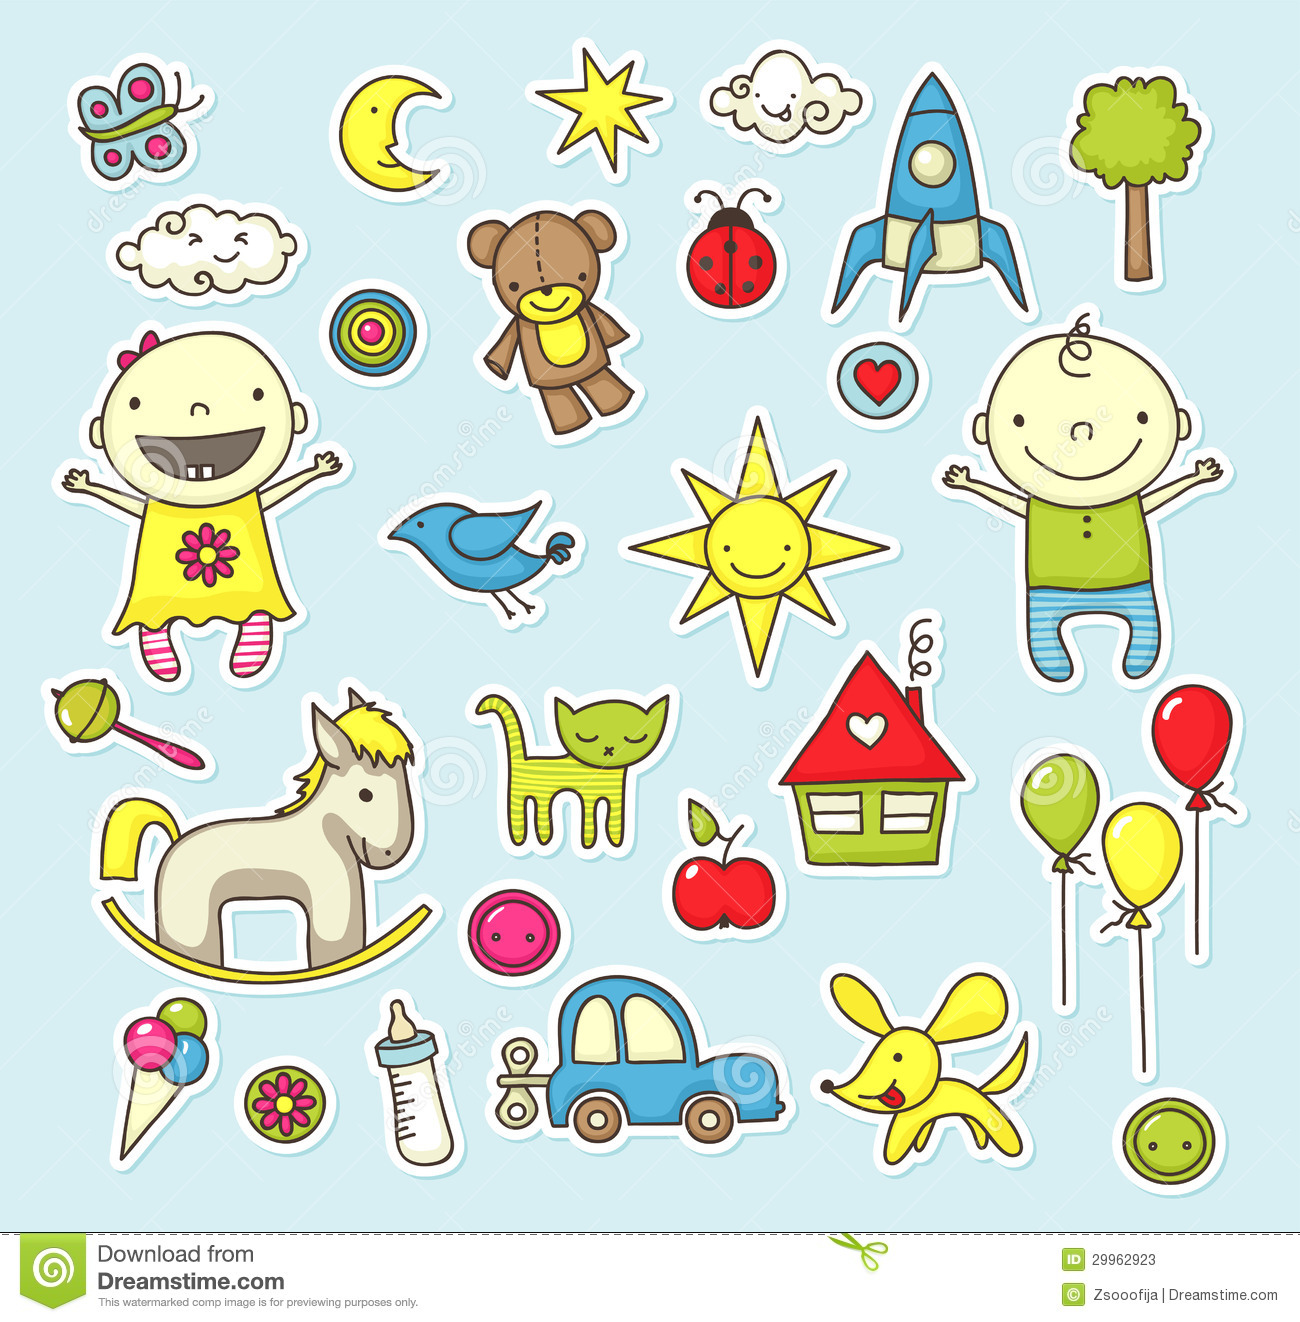 Baby stickers stock photos image 29962923 - Stickers muraux repositionnables bebe ...